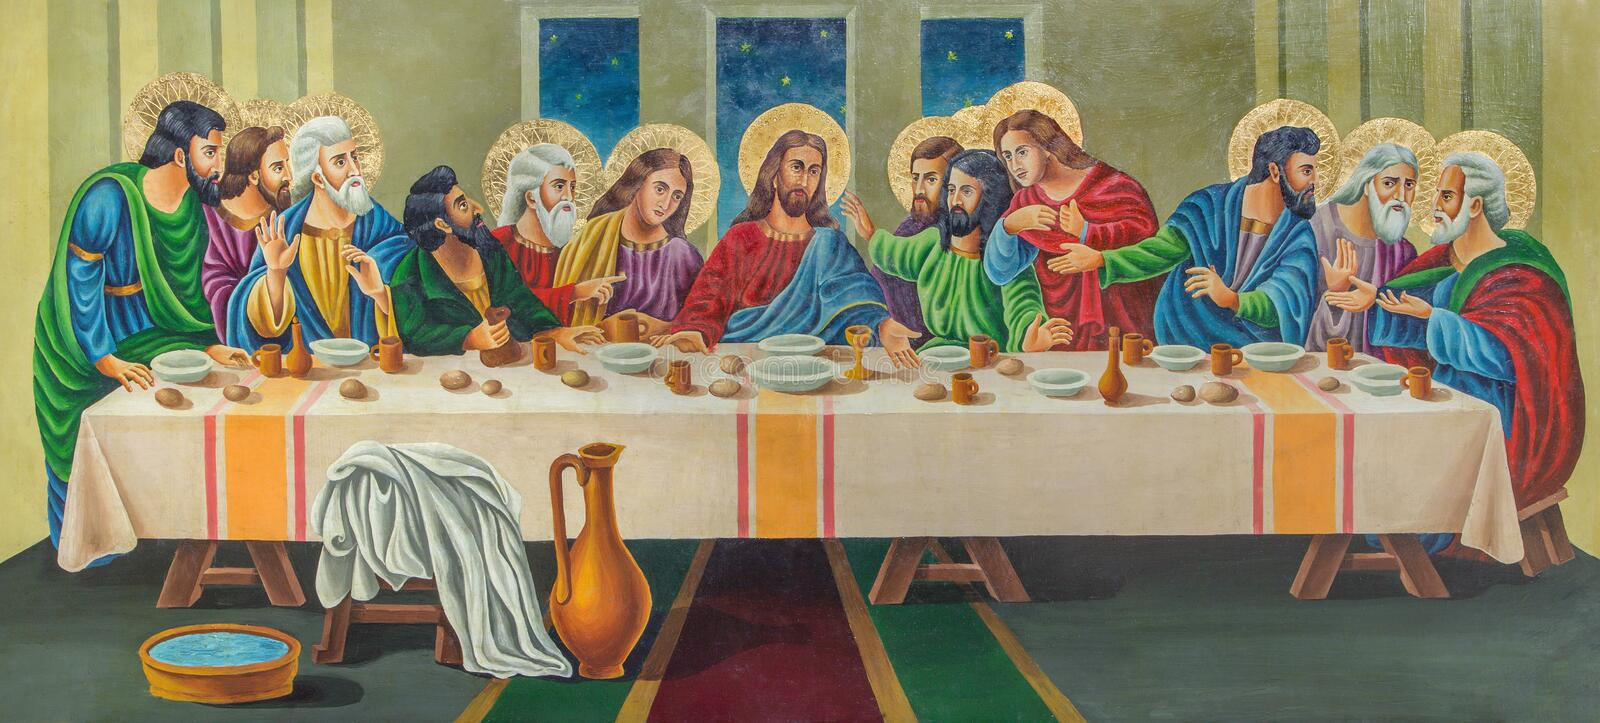 Download Jerusalem - The Painting The Last Supper By Artist Andranik (2001) On The Wood In Orthodox Church Tomb Of The Virgin Mary Stock Photo - Image: 56132114